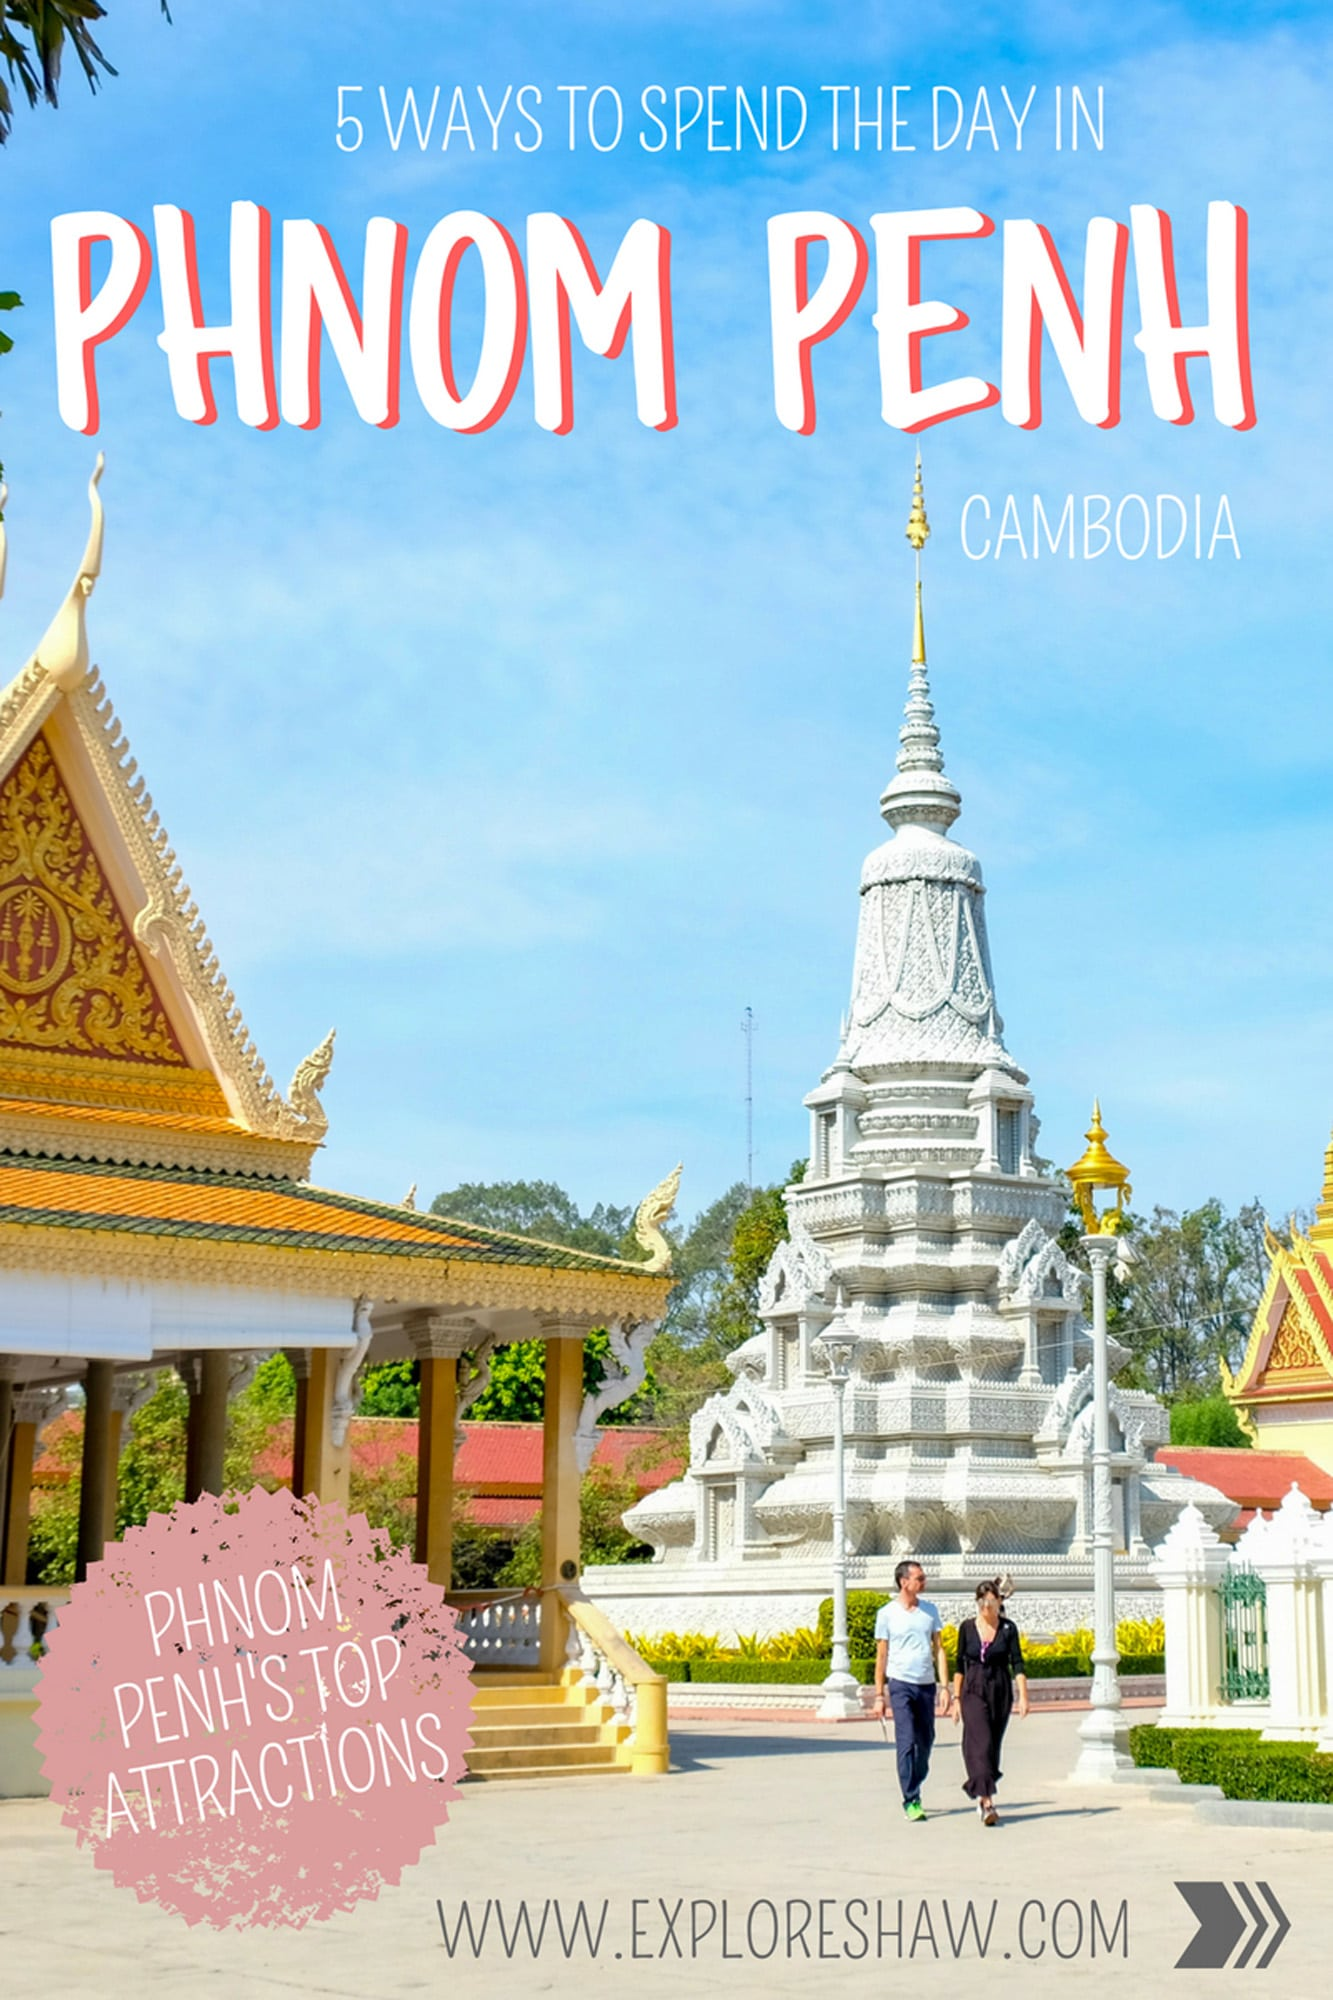 5 WAYS TO SPEND THE DAY IN PHNOM PENH